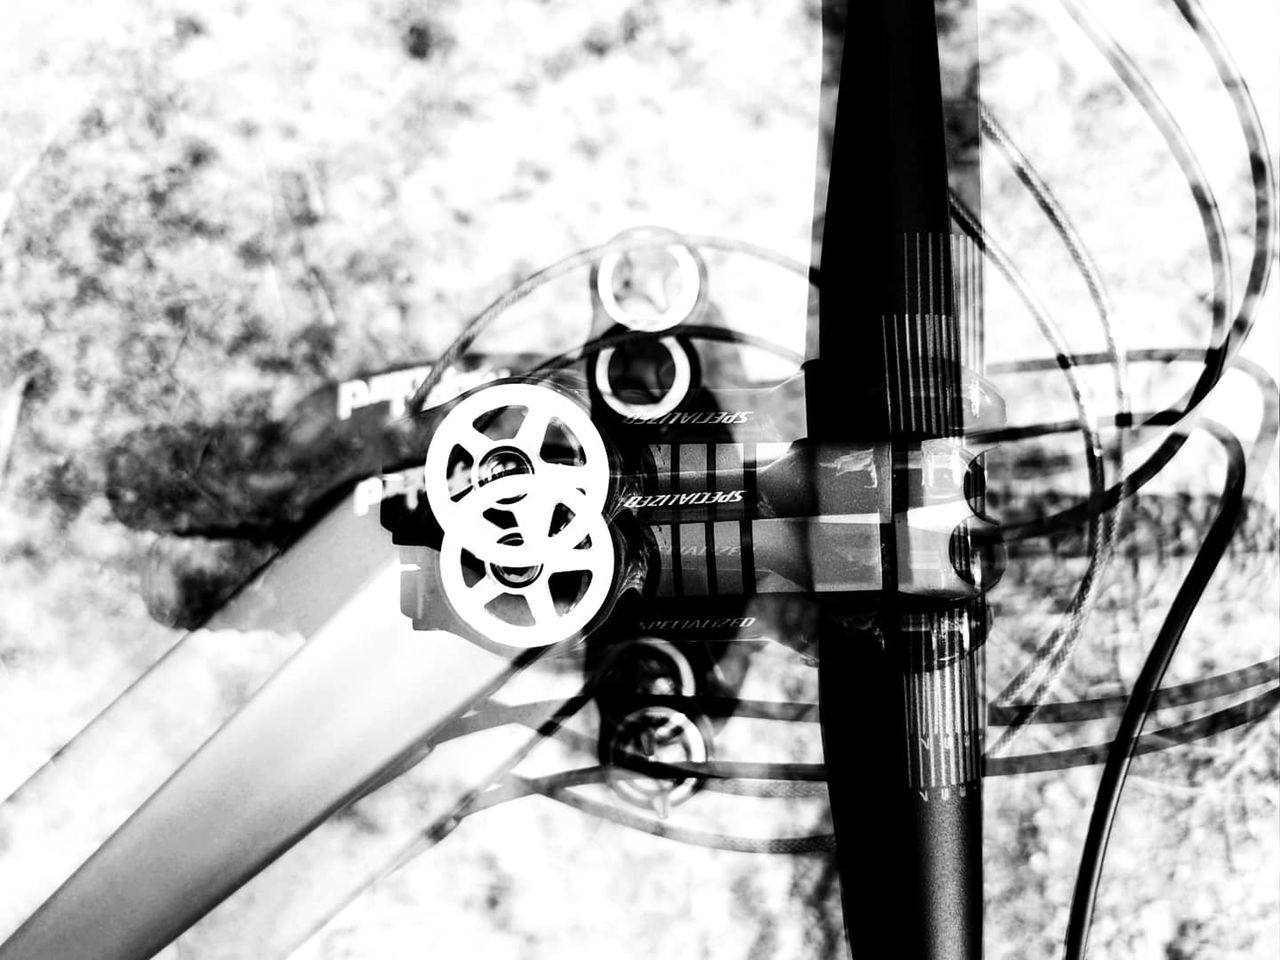 black and white, monochrome photography, monochrome, no people, day, nature, focus on foreground, white, black, bicycle, close-up, outdoors, metal, tree, plant, vehicle